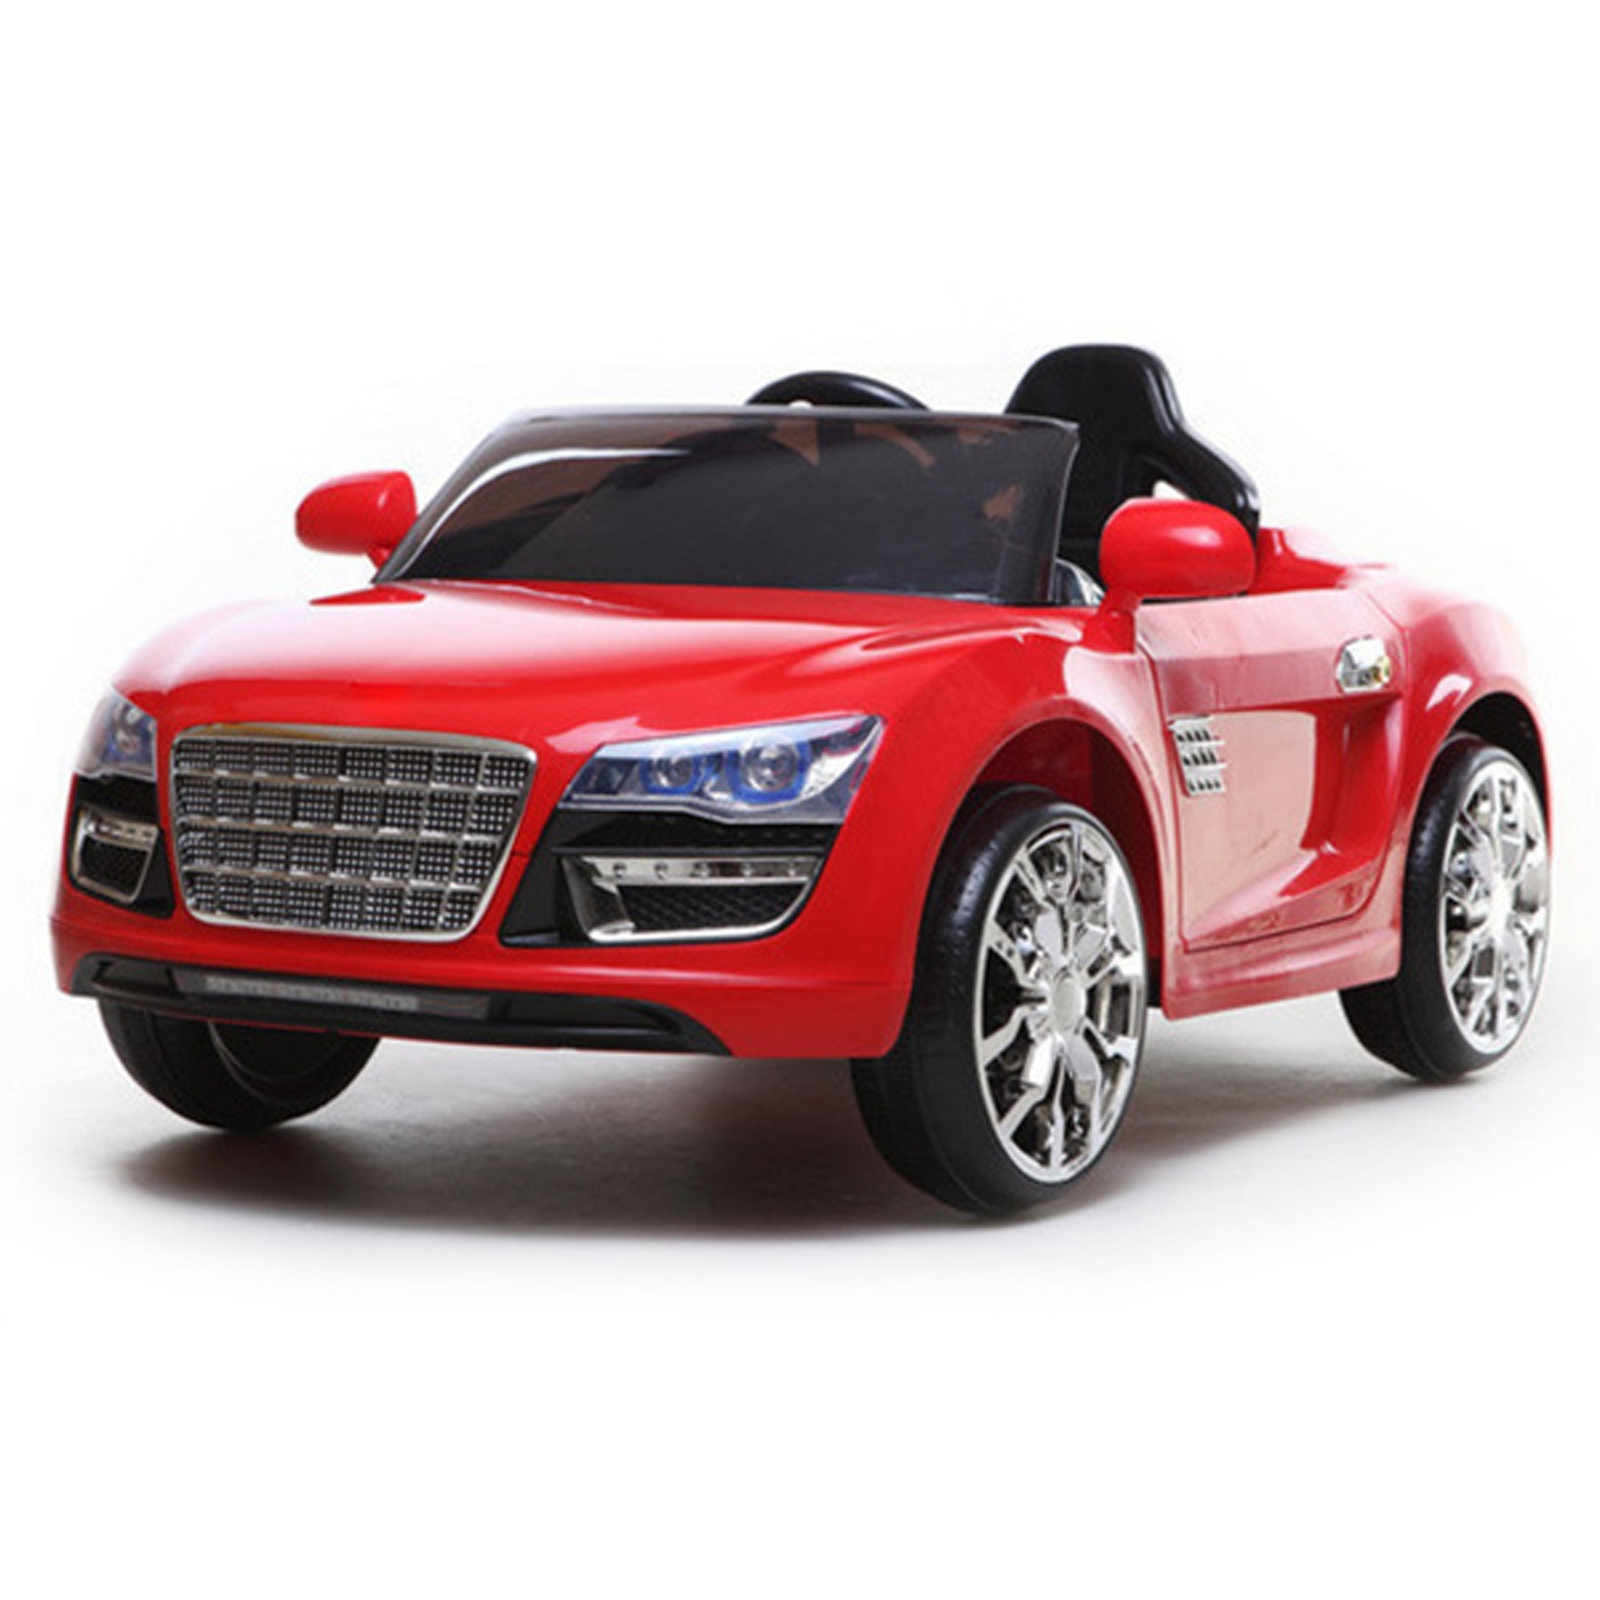 Super Coupe 12V Kids Battery Powered Ride On Car in Red